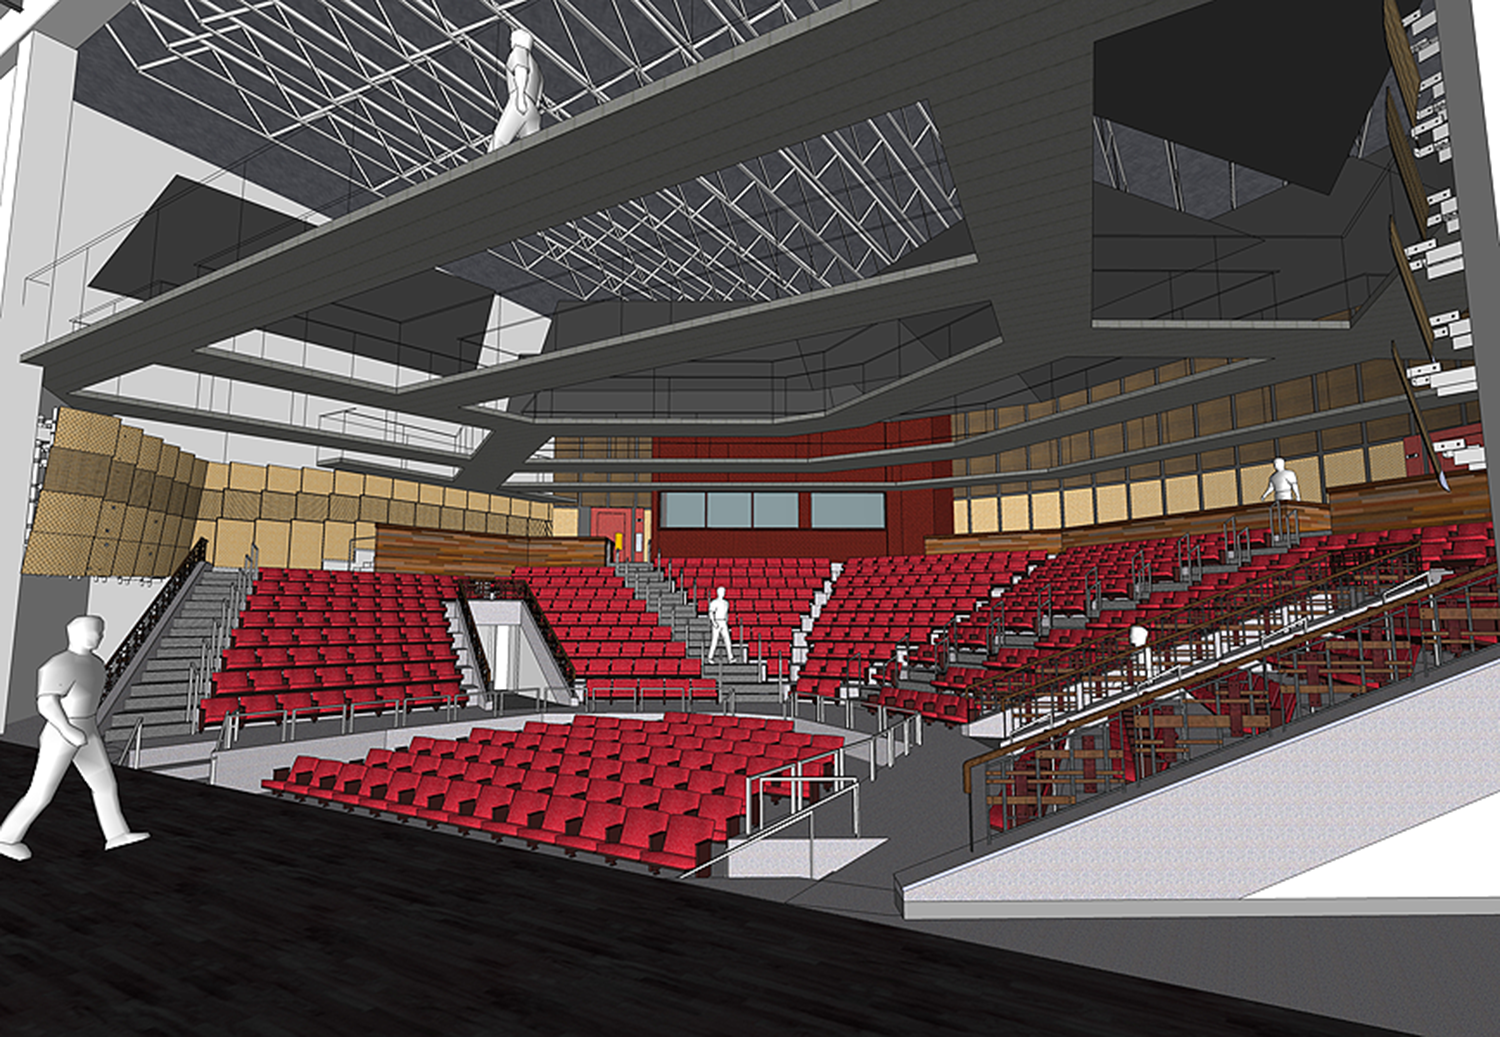 Theater from stage